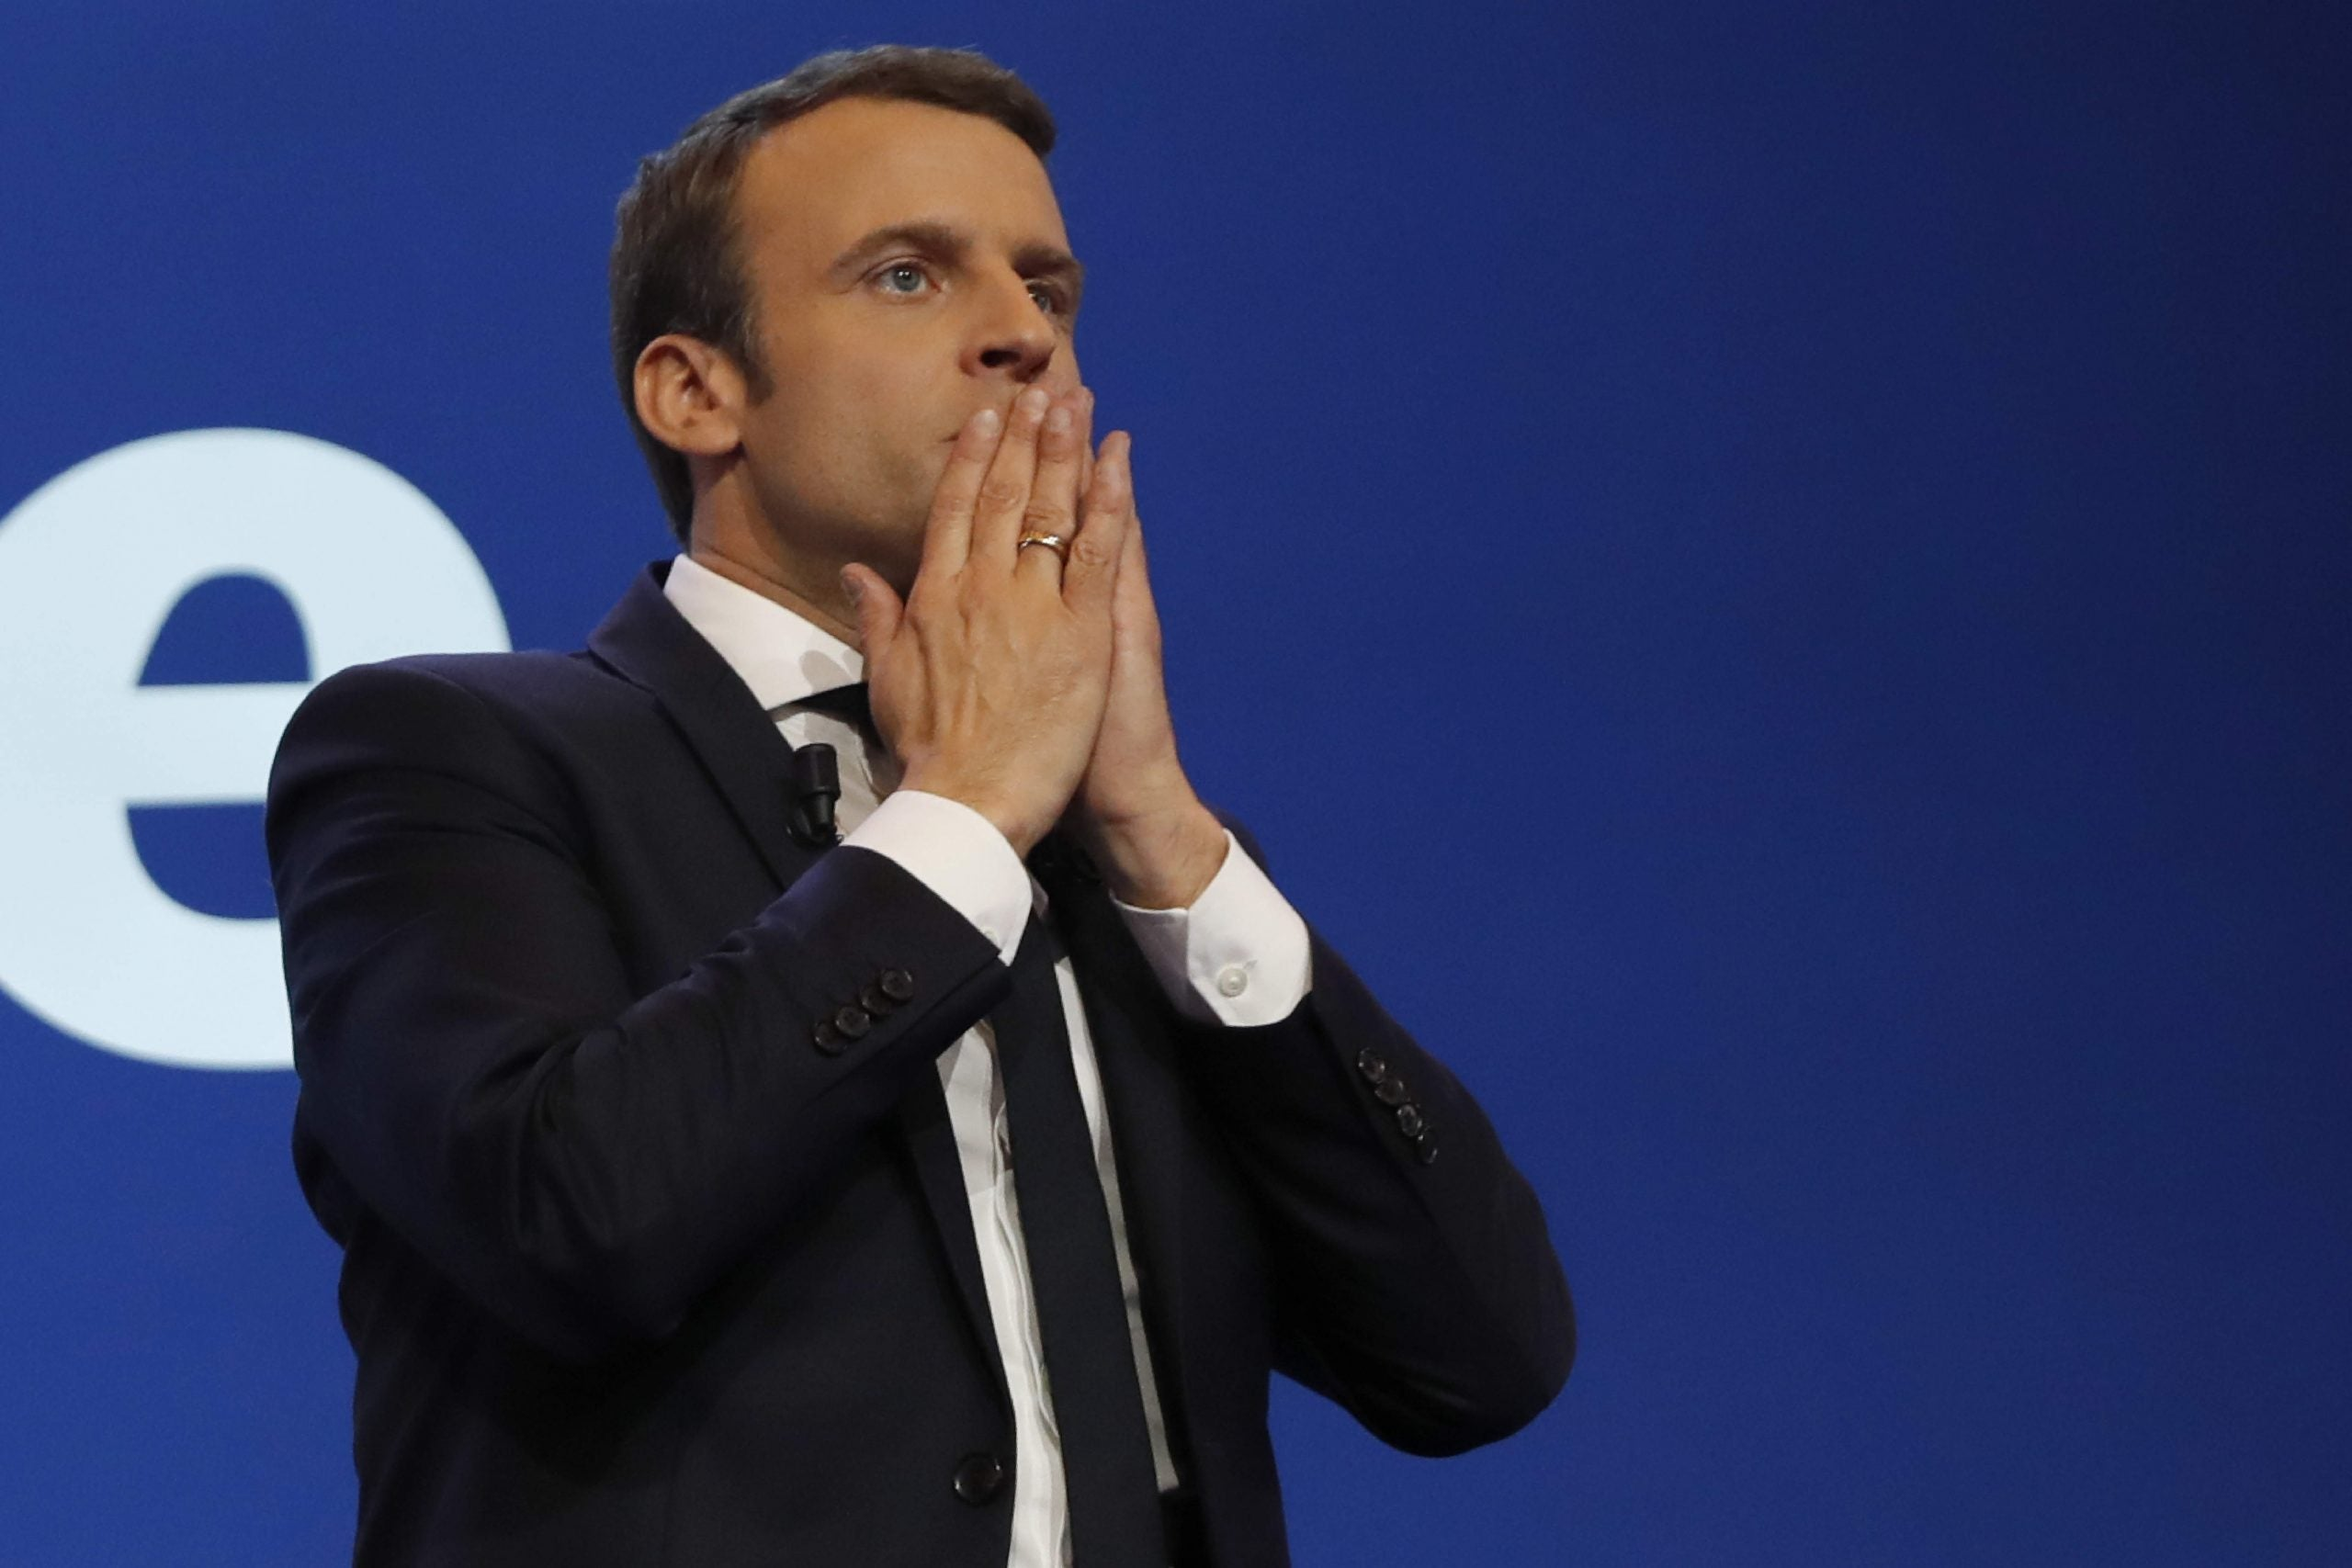 The failed French presidential candidates who refuse to endorse Emmanuel Macron